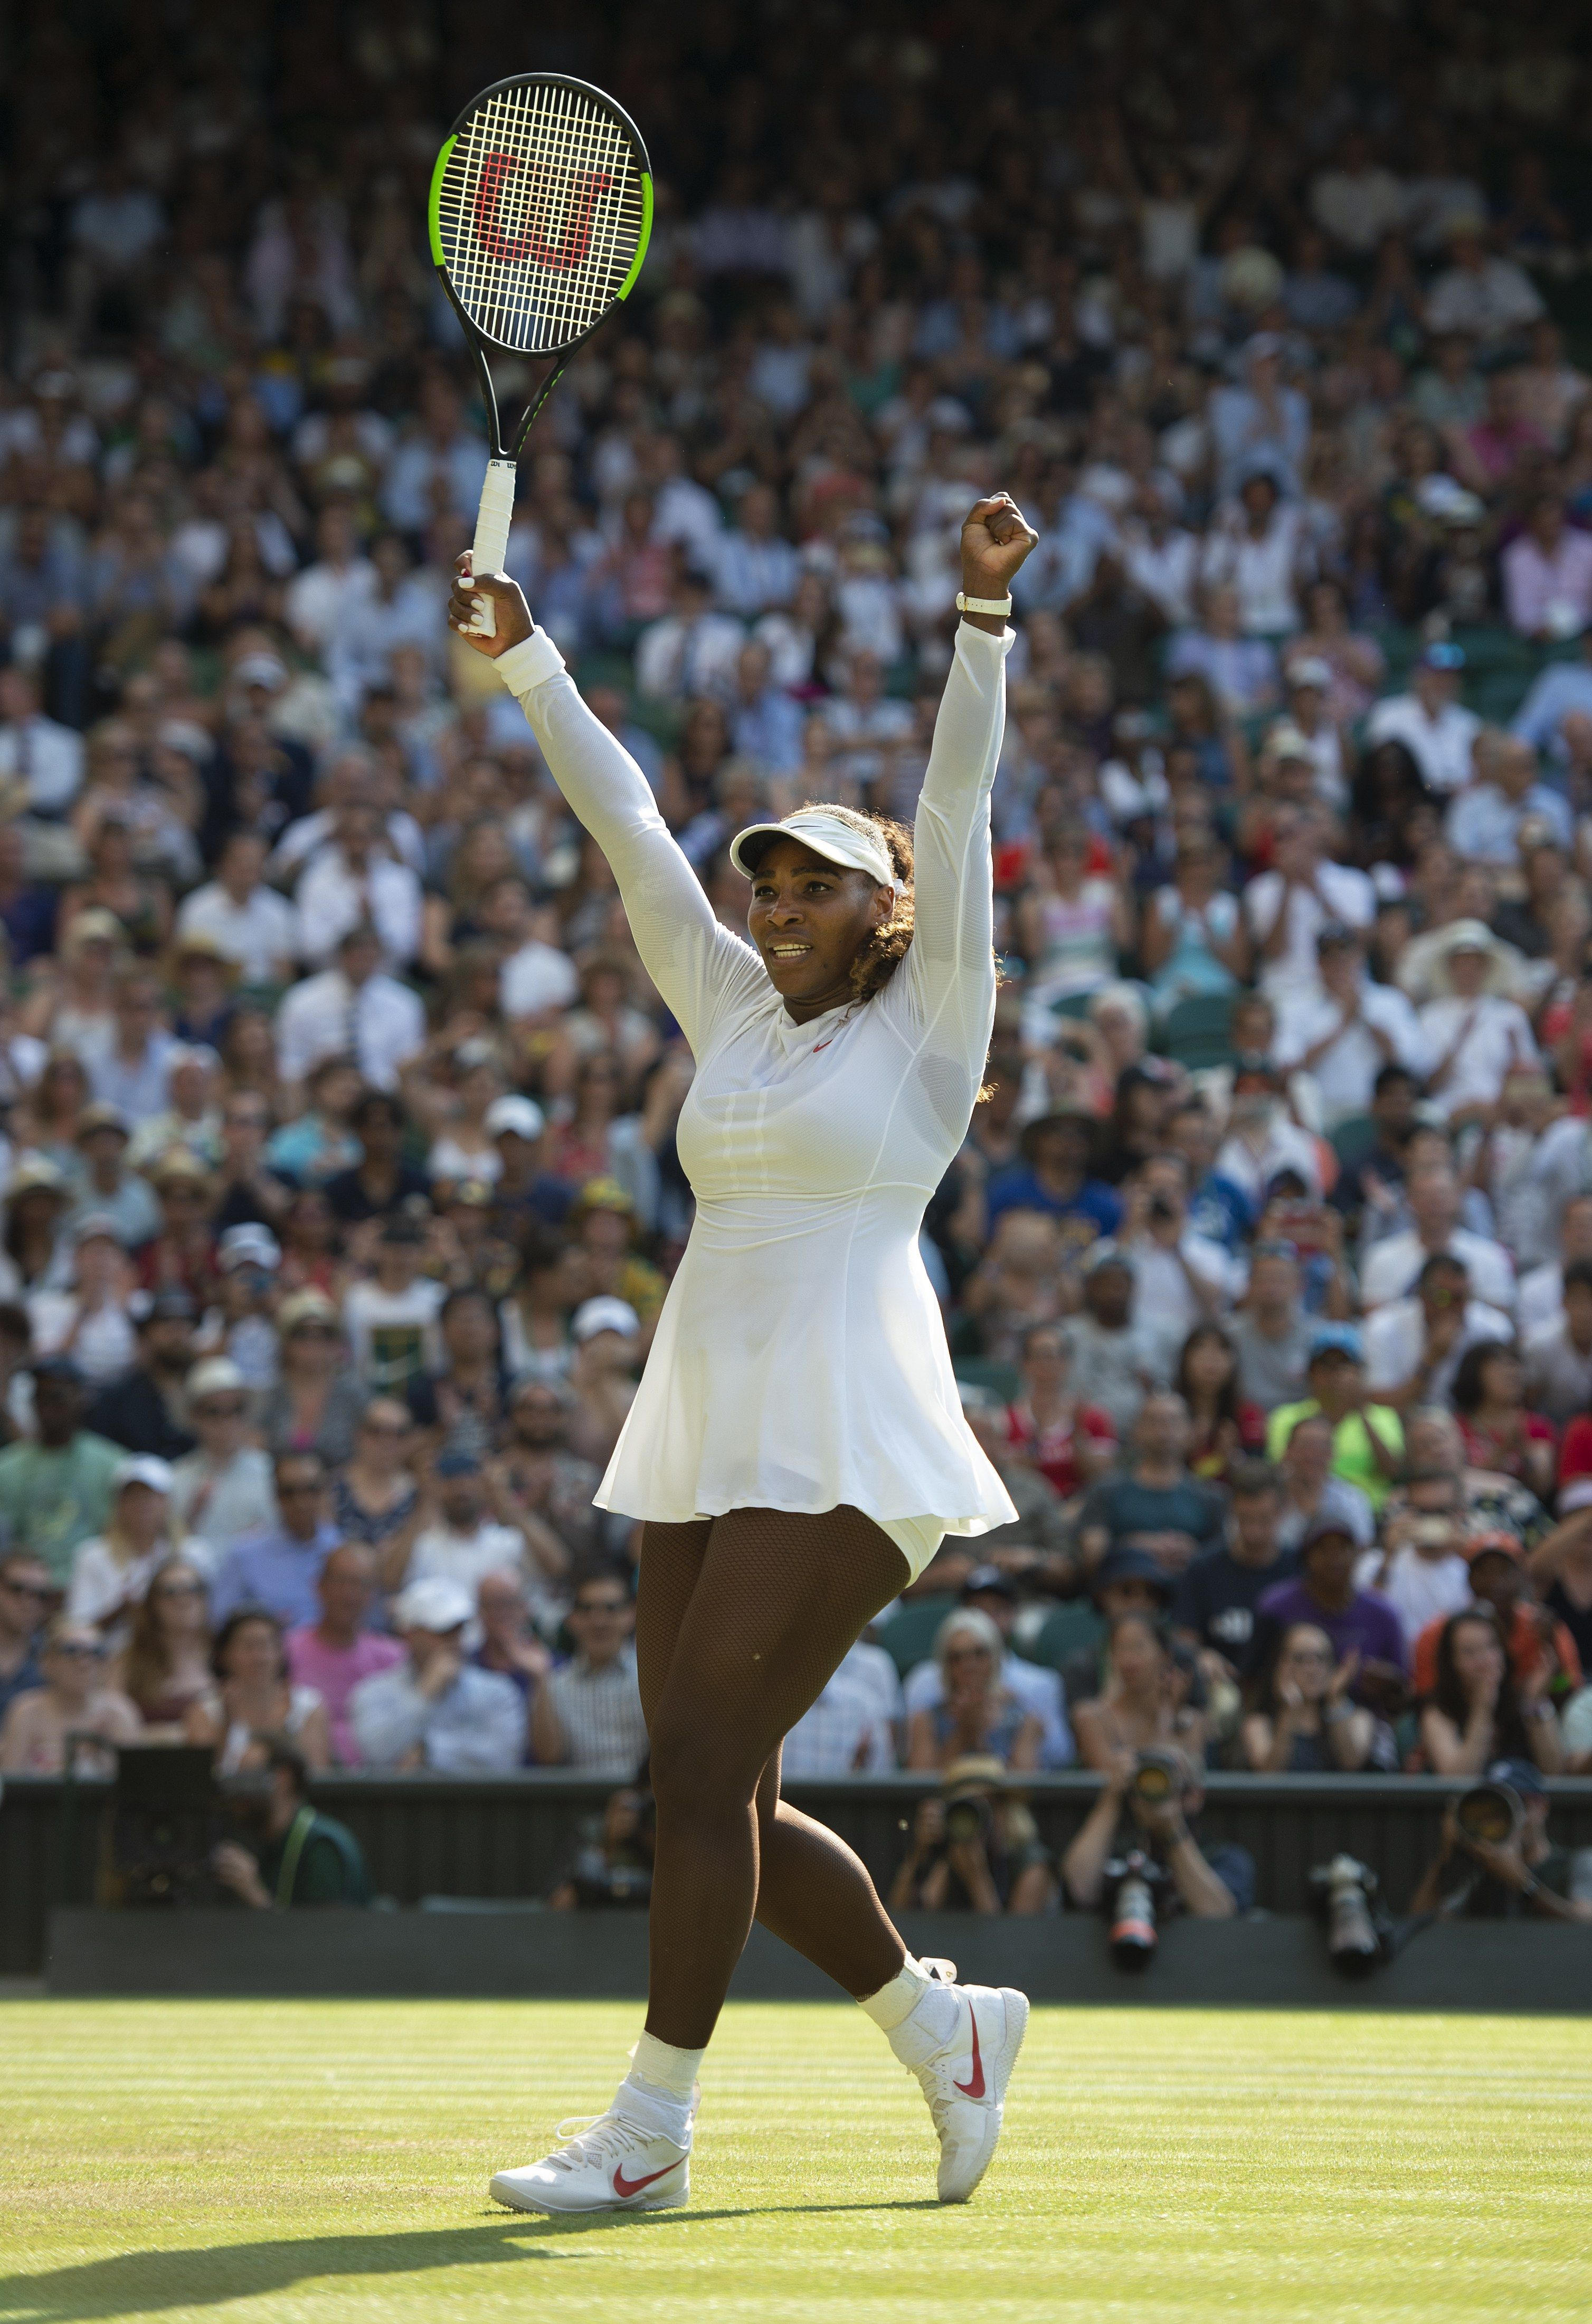 152c81e42a8 At a Wimbledon Press Conference, Serena Williams Gives a Master Class in  Unapologetic Excellence   Pinterest   Serena williams, Wimbledon and Tennis  legends